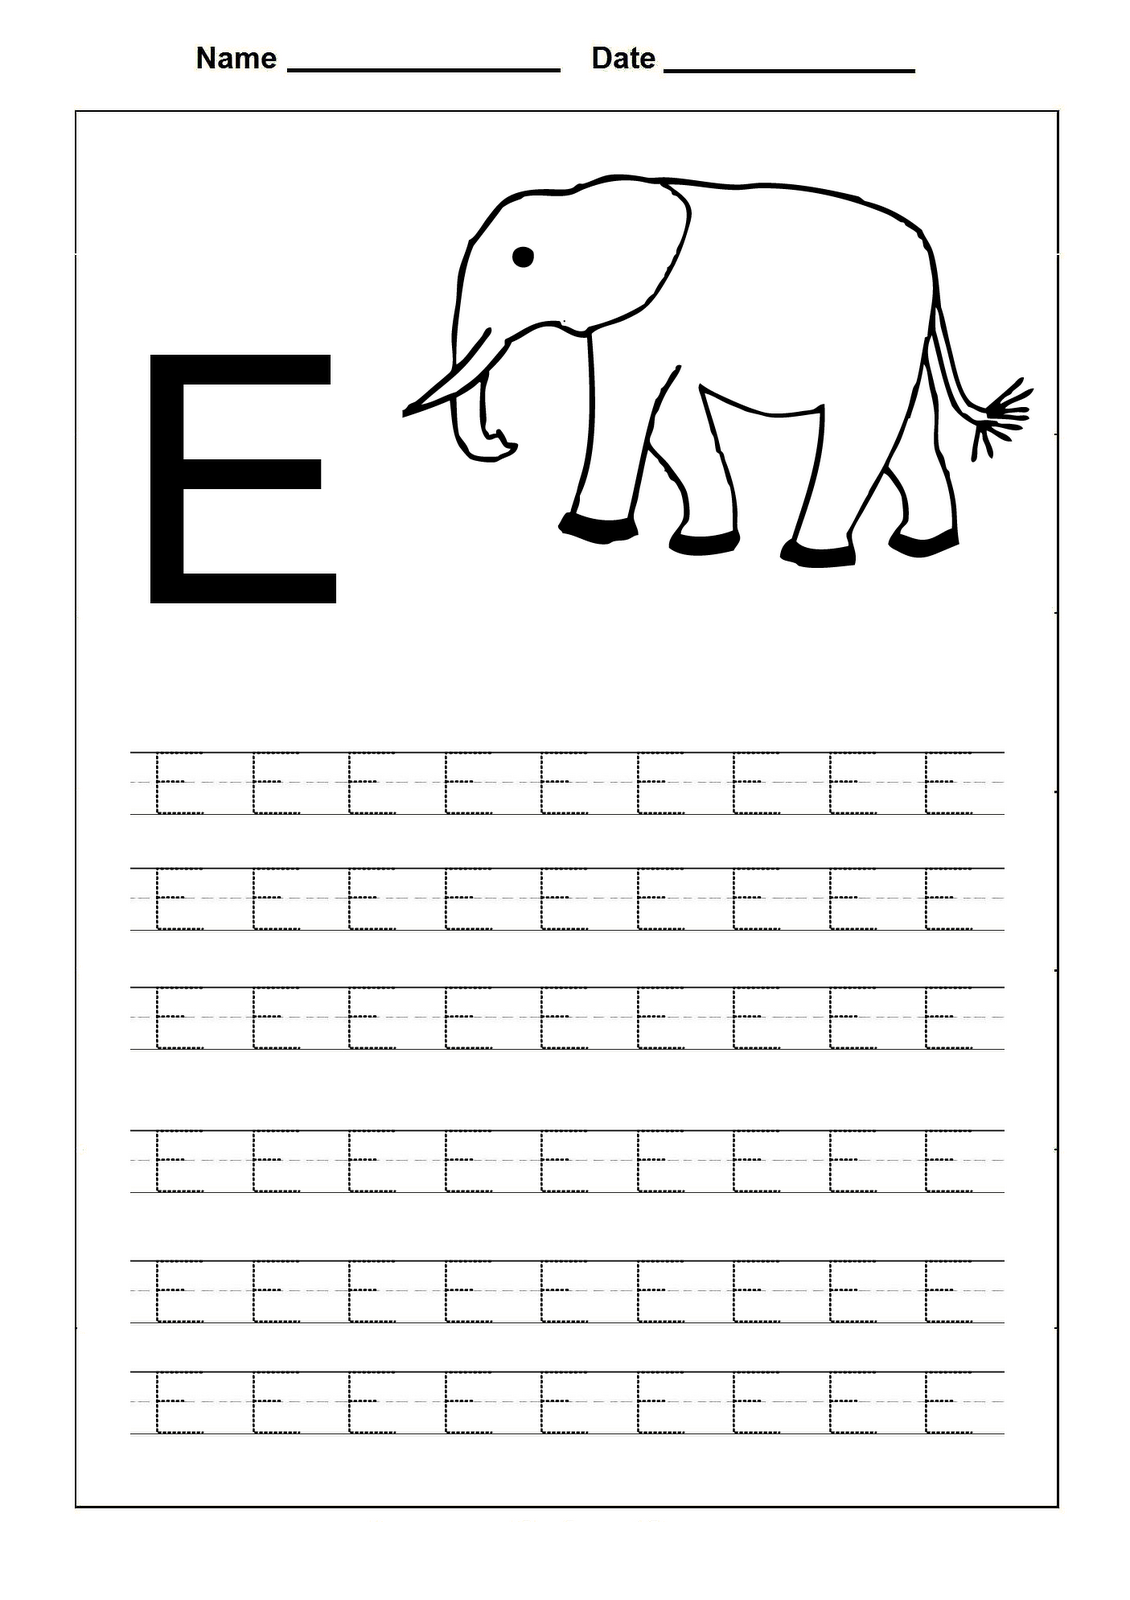 Traceable alphabet worksheets for kindergarten free for Traceable alphabet templates